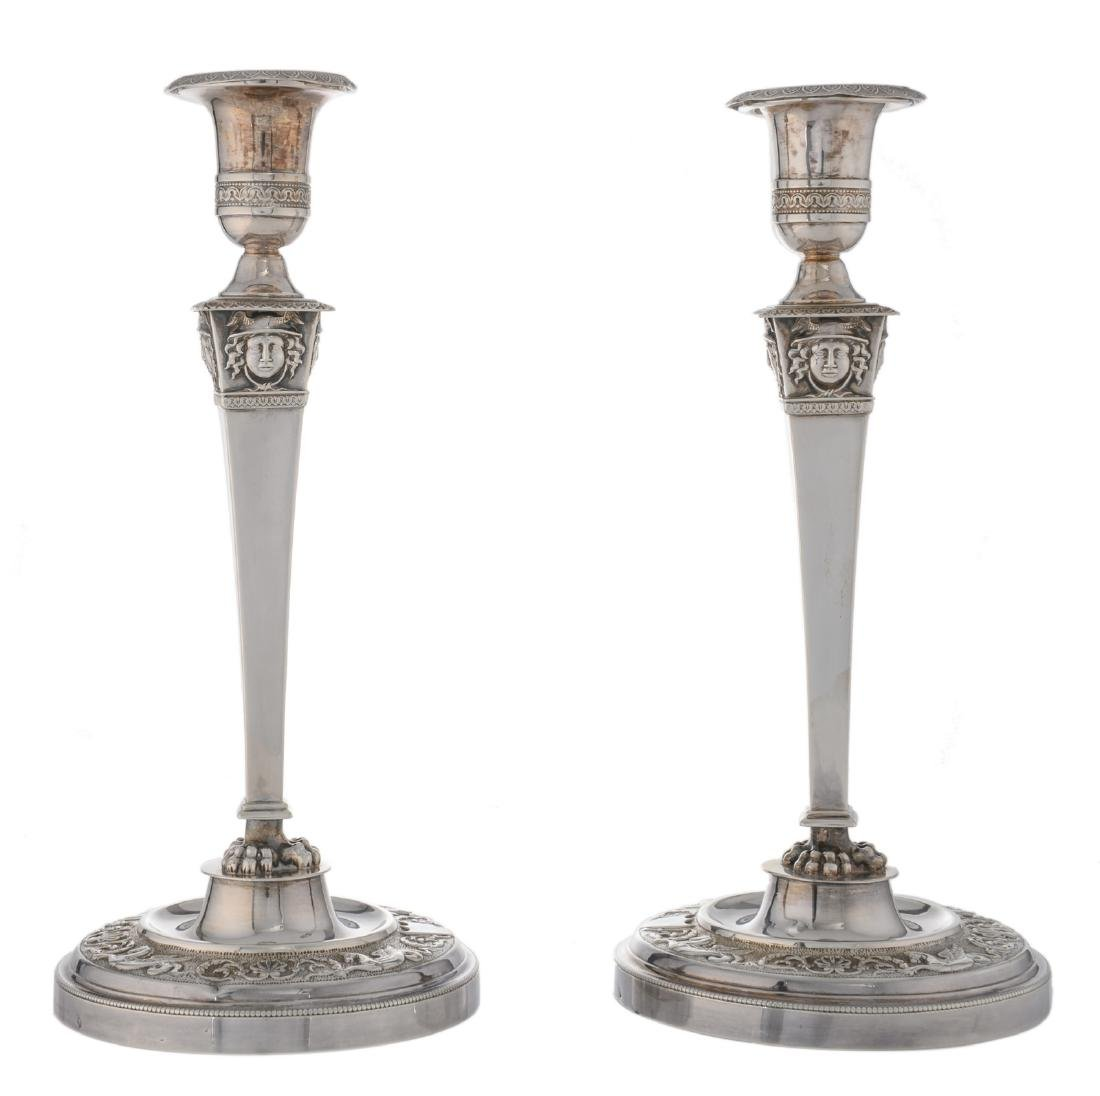 A pair of second half of the 19thC French export silver